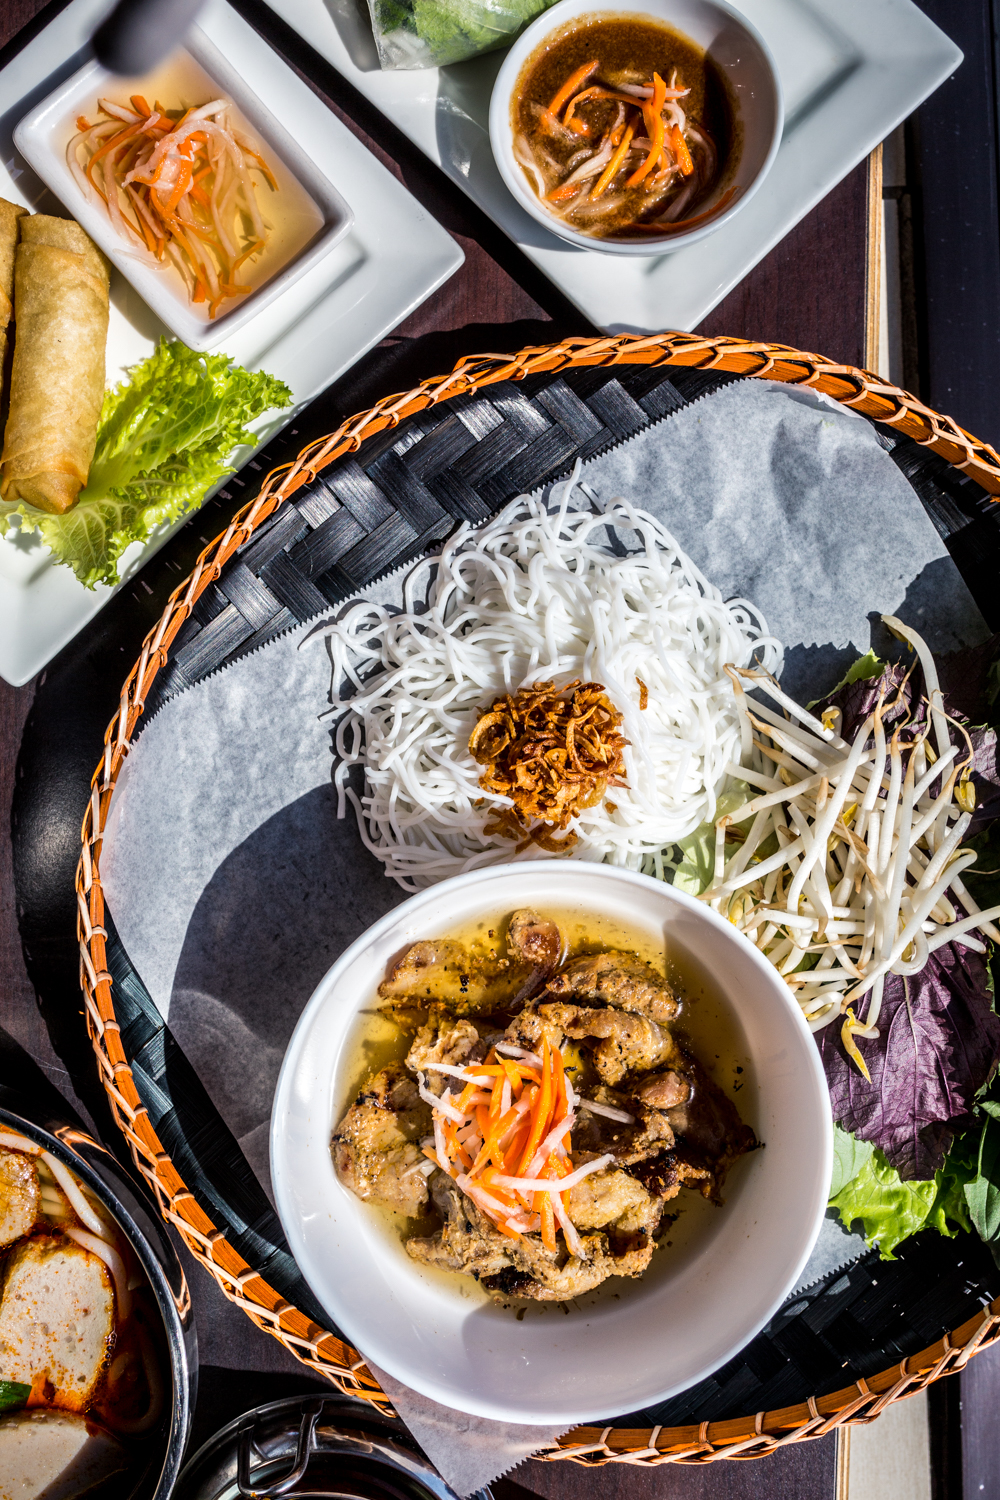 The restaurant serves lunch from 11 AM-2 PM, and dinner from 4-9 PM on Monday, Wednesday, and Thursday. On Fridays and Saturdays, its hours are 11 AM-9 PM. On Sundays, it's open from 10 AM to 7 PM. Saigon Noodle Bar isn't open on Tuesdays.